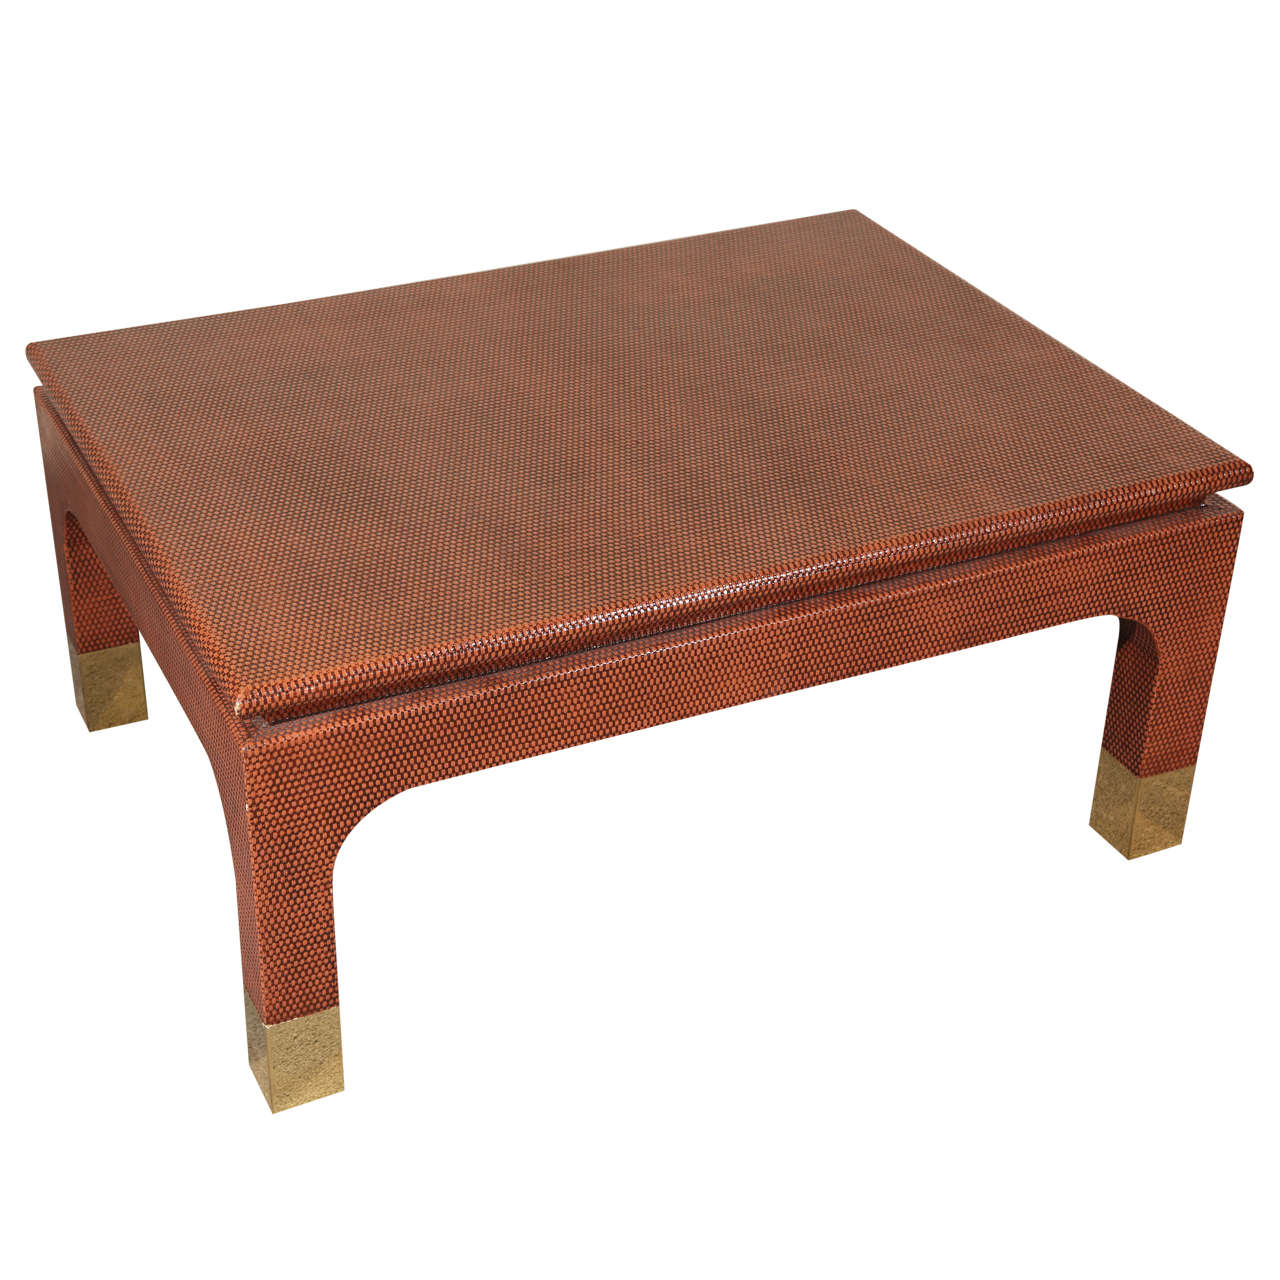 Grass Cloth Coffee Table By Steve Chase At 1stdibs